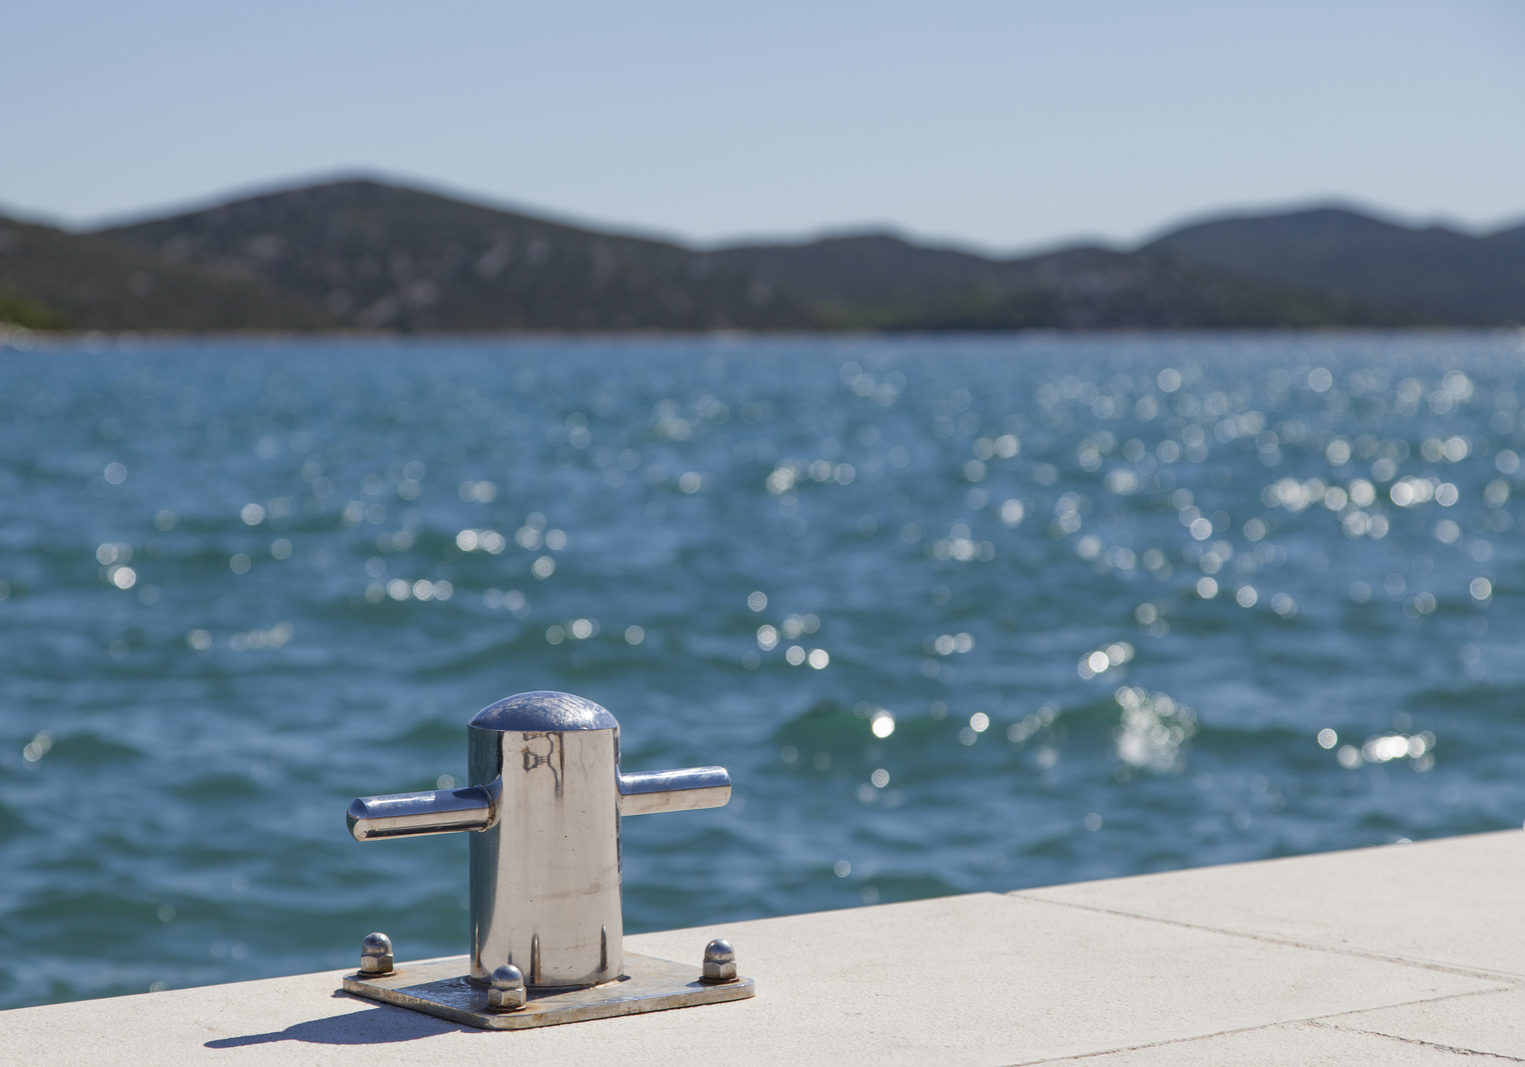 Metal mooring bollard on the dock of concrete harbor pier, selective focus on bollard, space for text